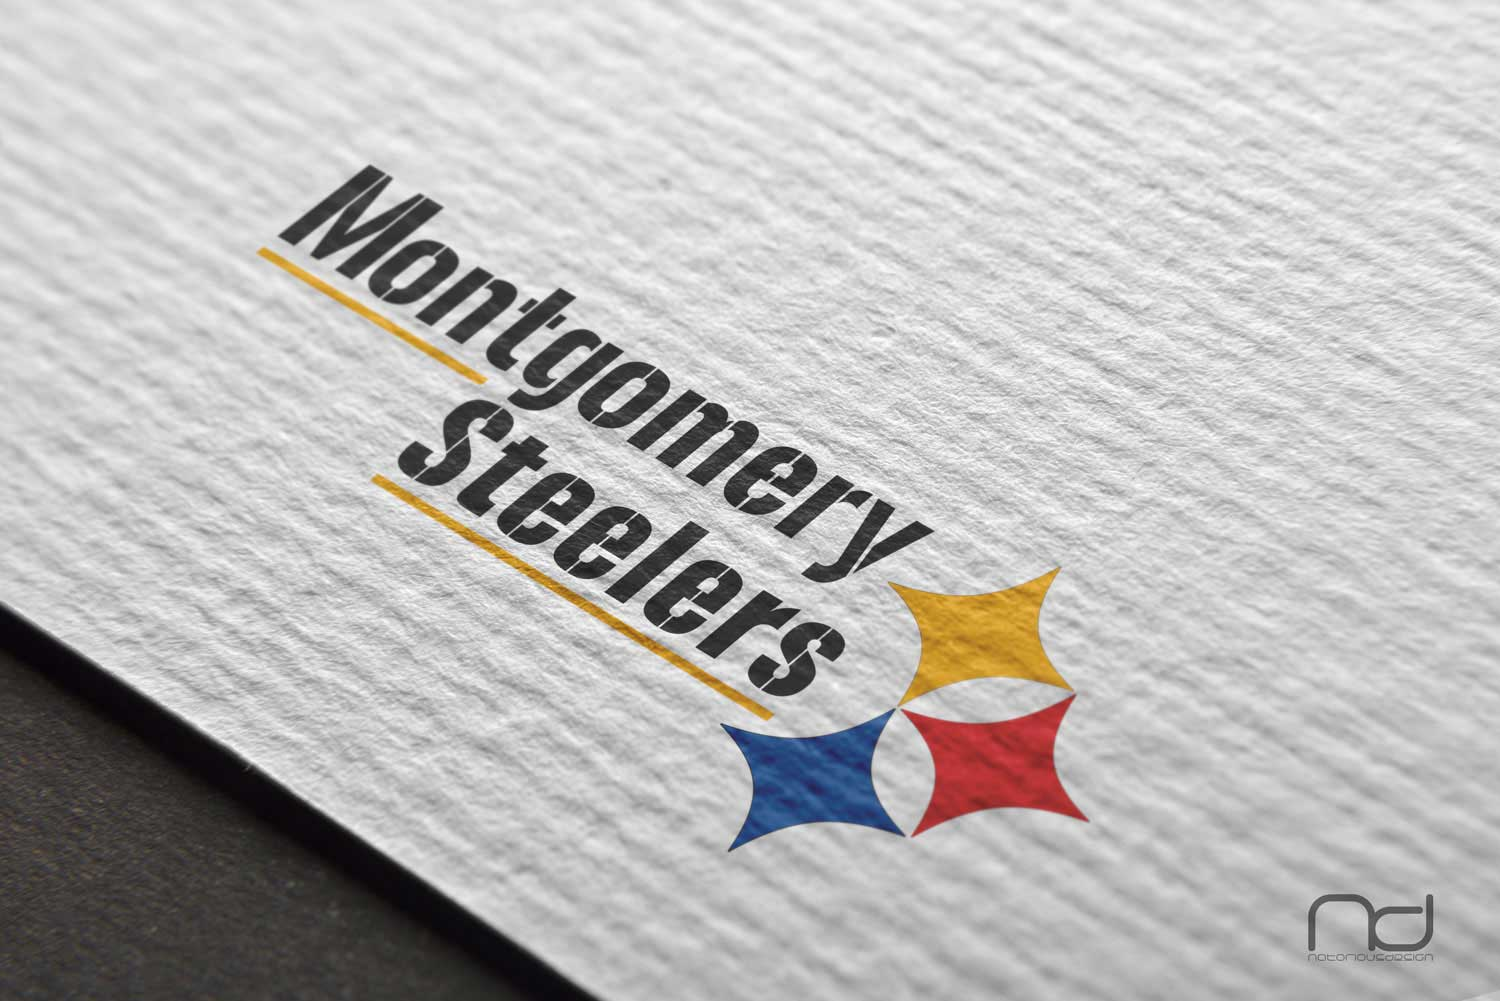 Montgomery Steelers Youth Football Association